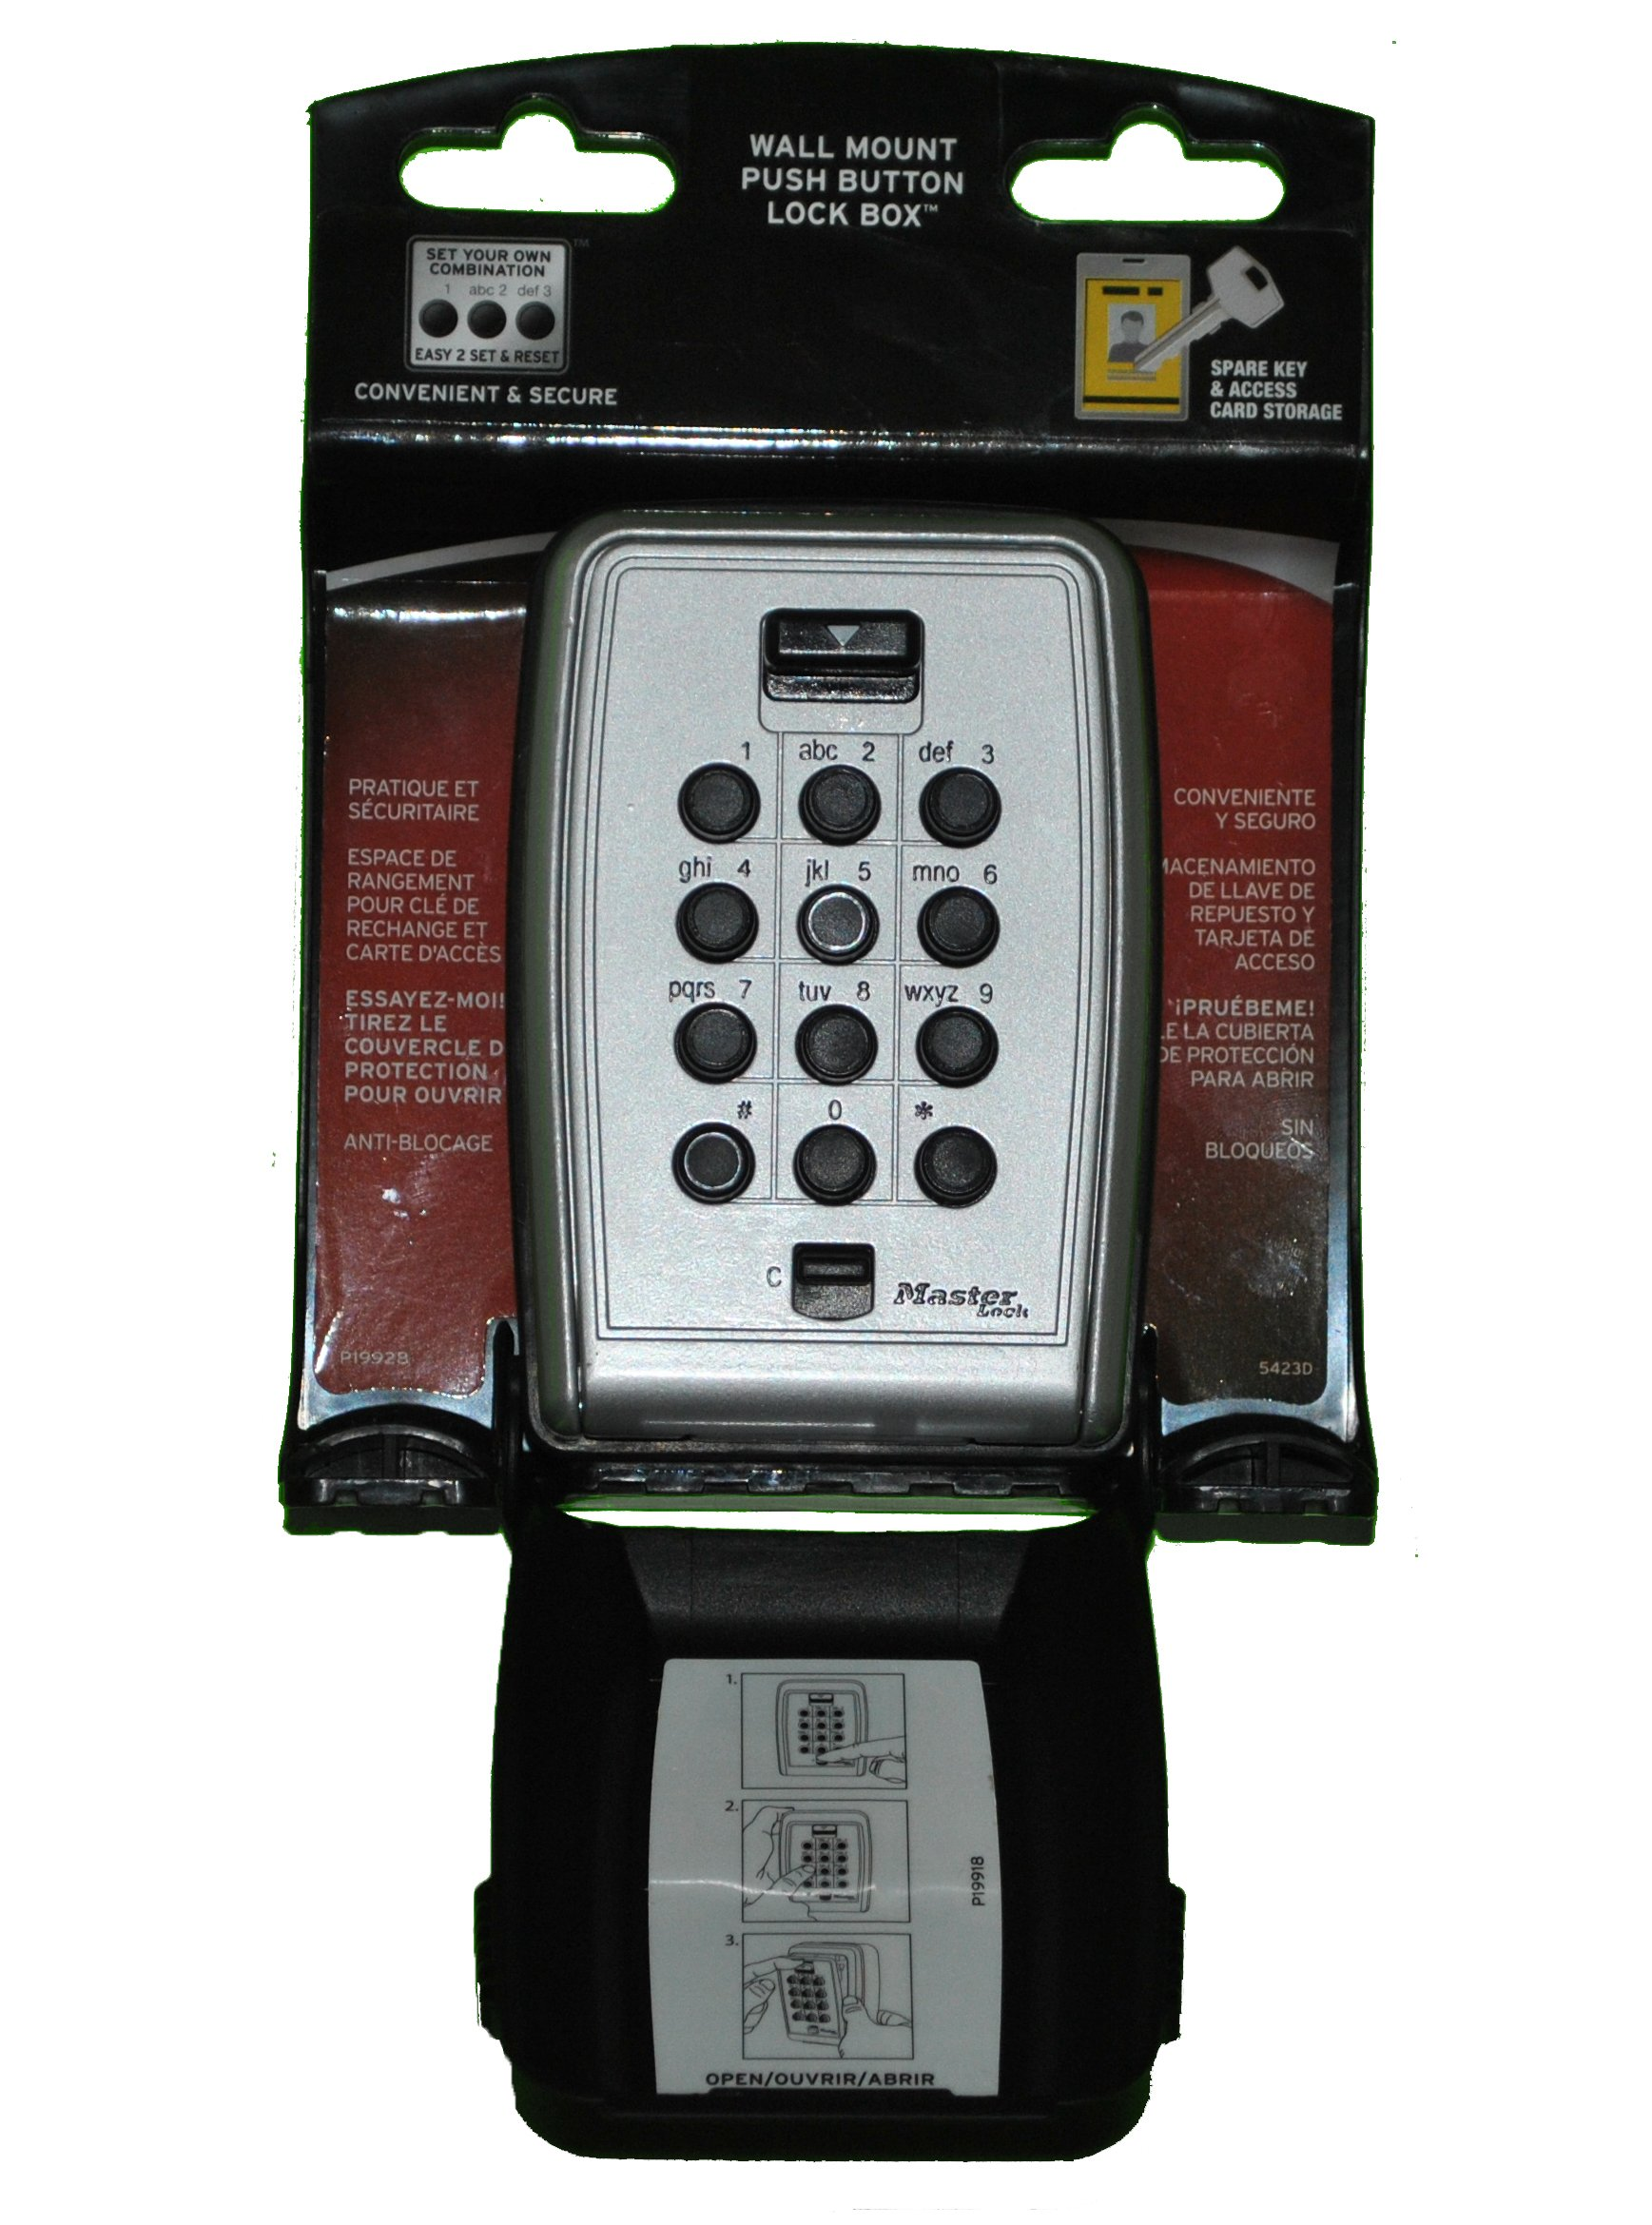 Details about Master Lock Lock Box, Set Your Own Combination Push Button  Wall Mount Key Safe,